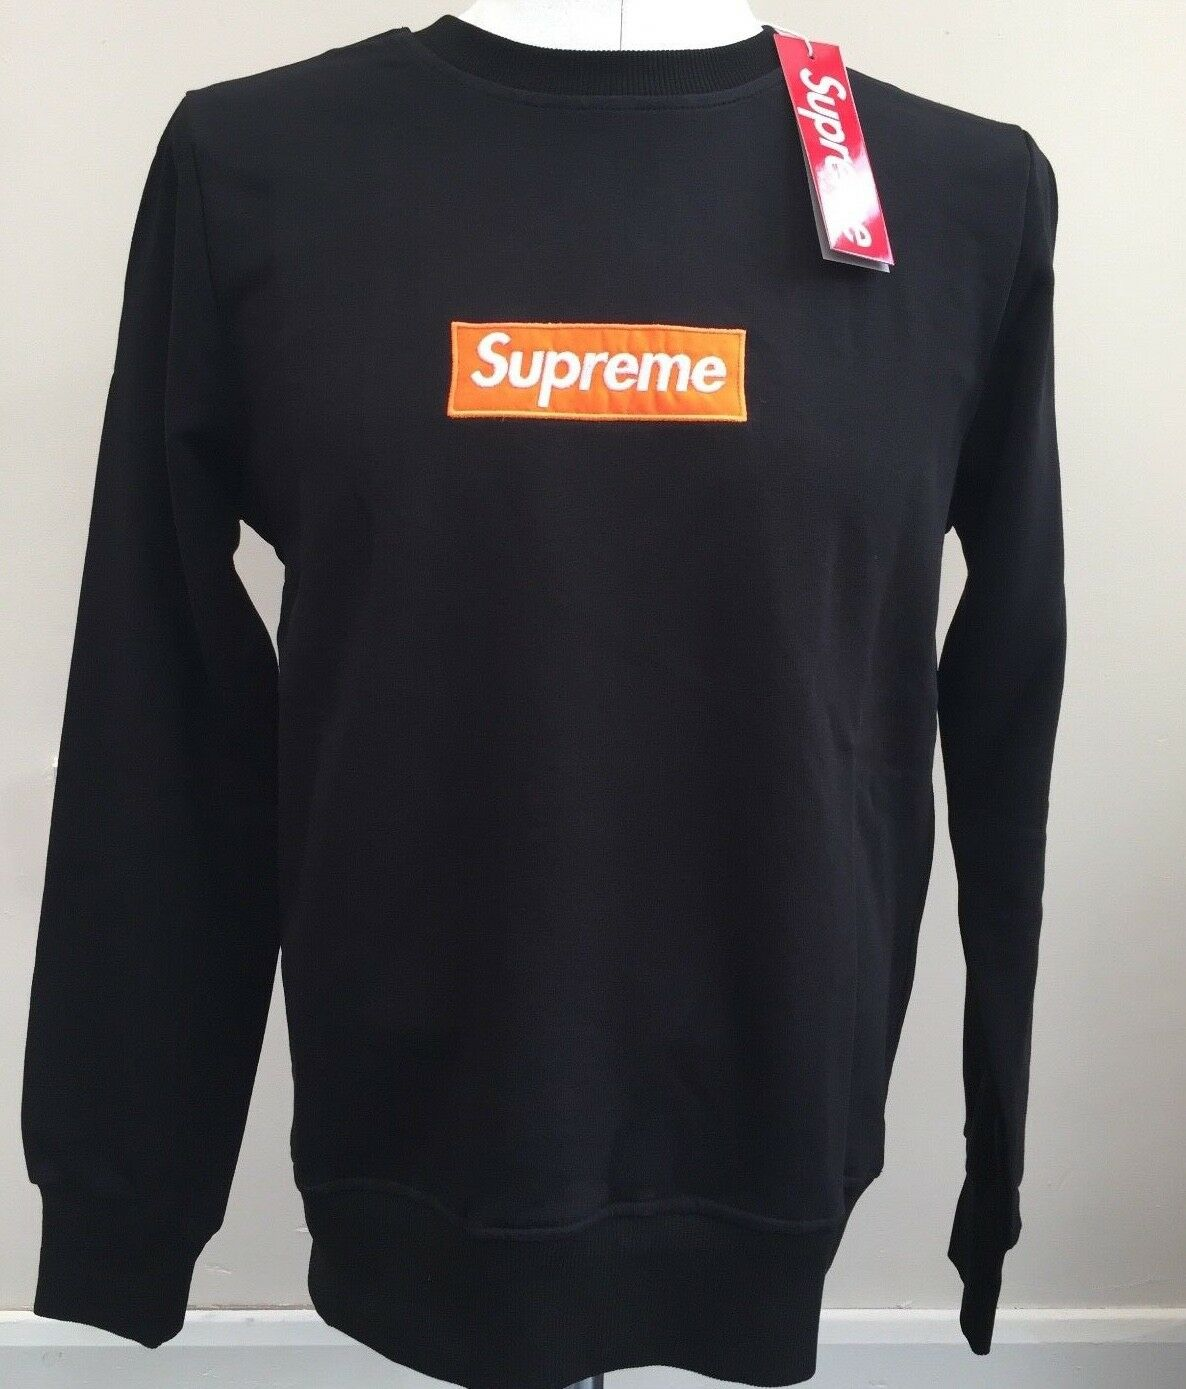 BNWT AUTHENTIC SUPREME ITALIA (Not Supreme New York)  SWEATSHIRT X-LARGE SIZE